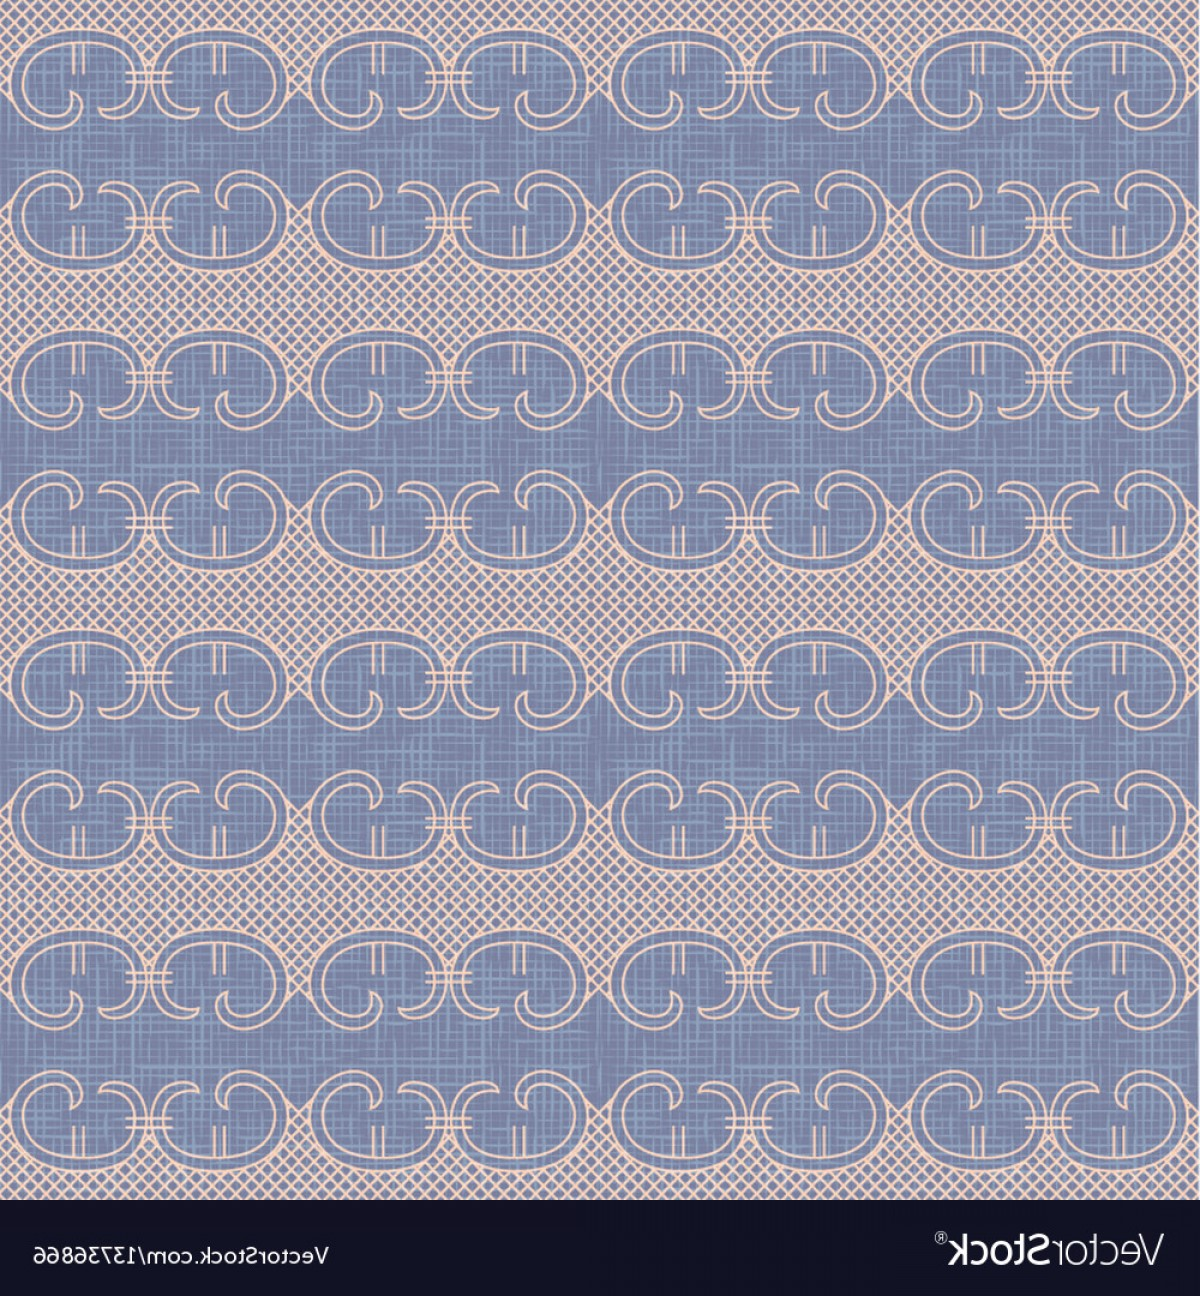 Floral Lace Trim Vector: Vintage Lace Trim Seamless Pattern Background Vector